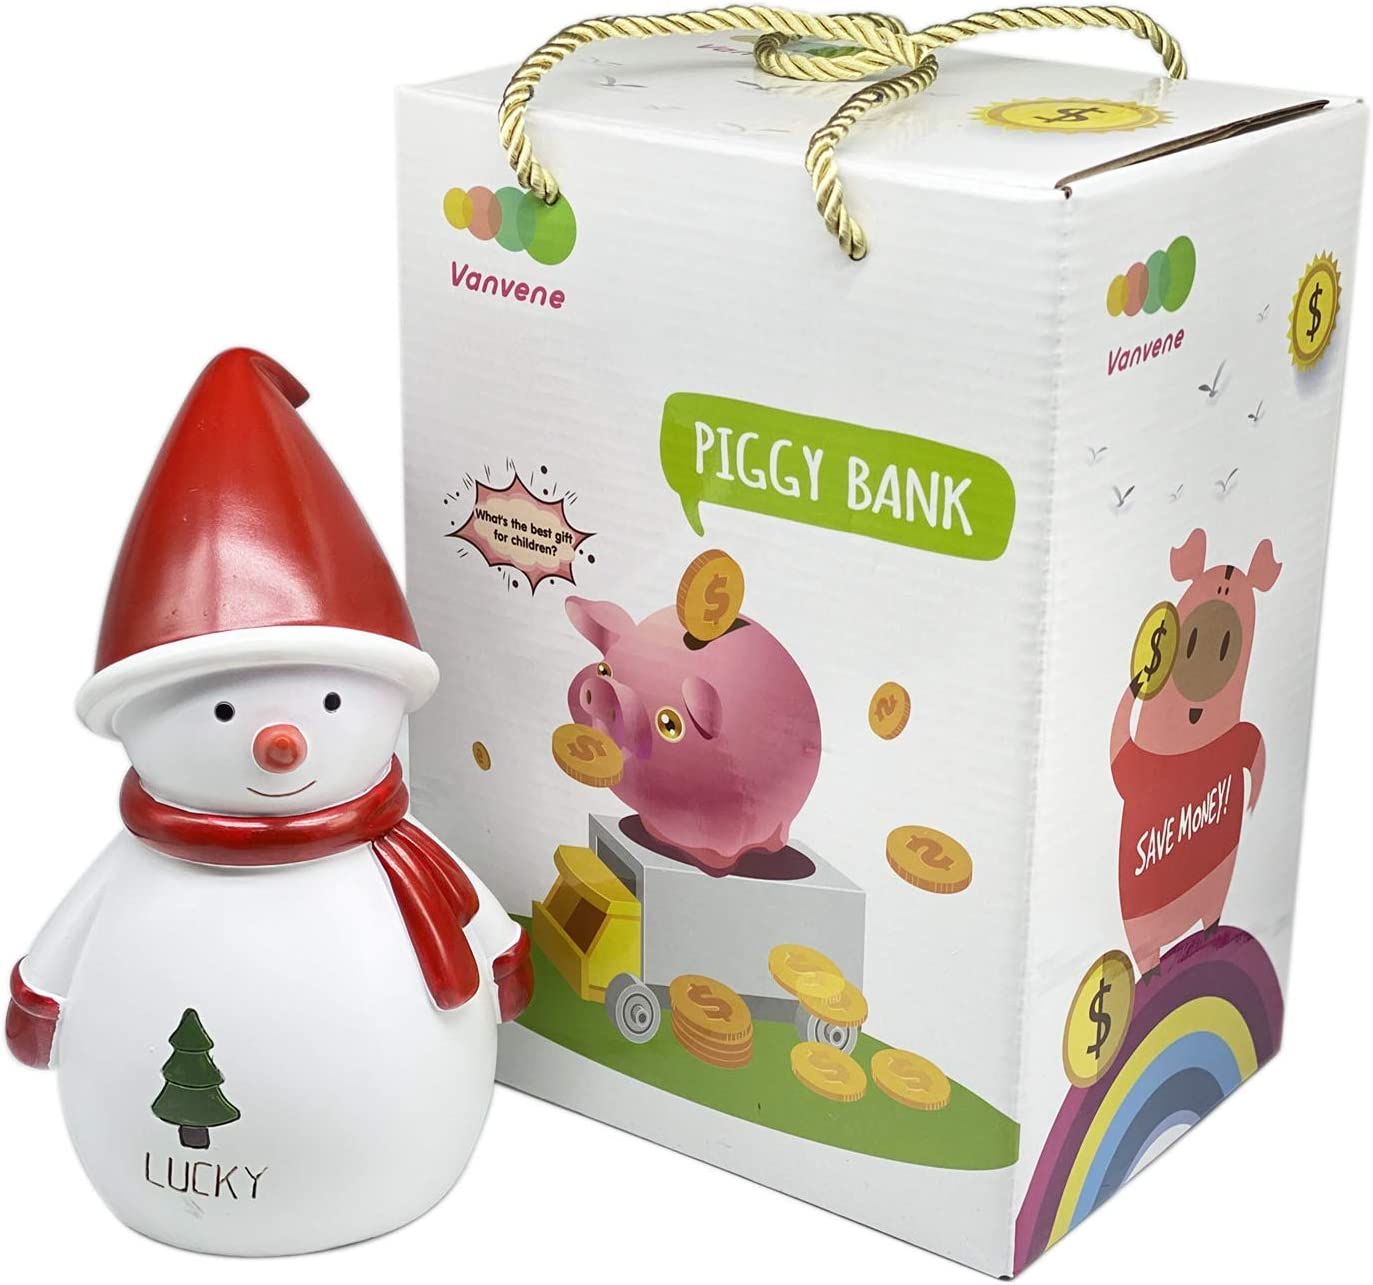 Christmas Decoration Large Size Piggy Banks Money Bank Coin Bank Best Birthday Great for Room Decor Happy Santa Piggy Bank for Kids Great Gift for Children in Christmas